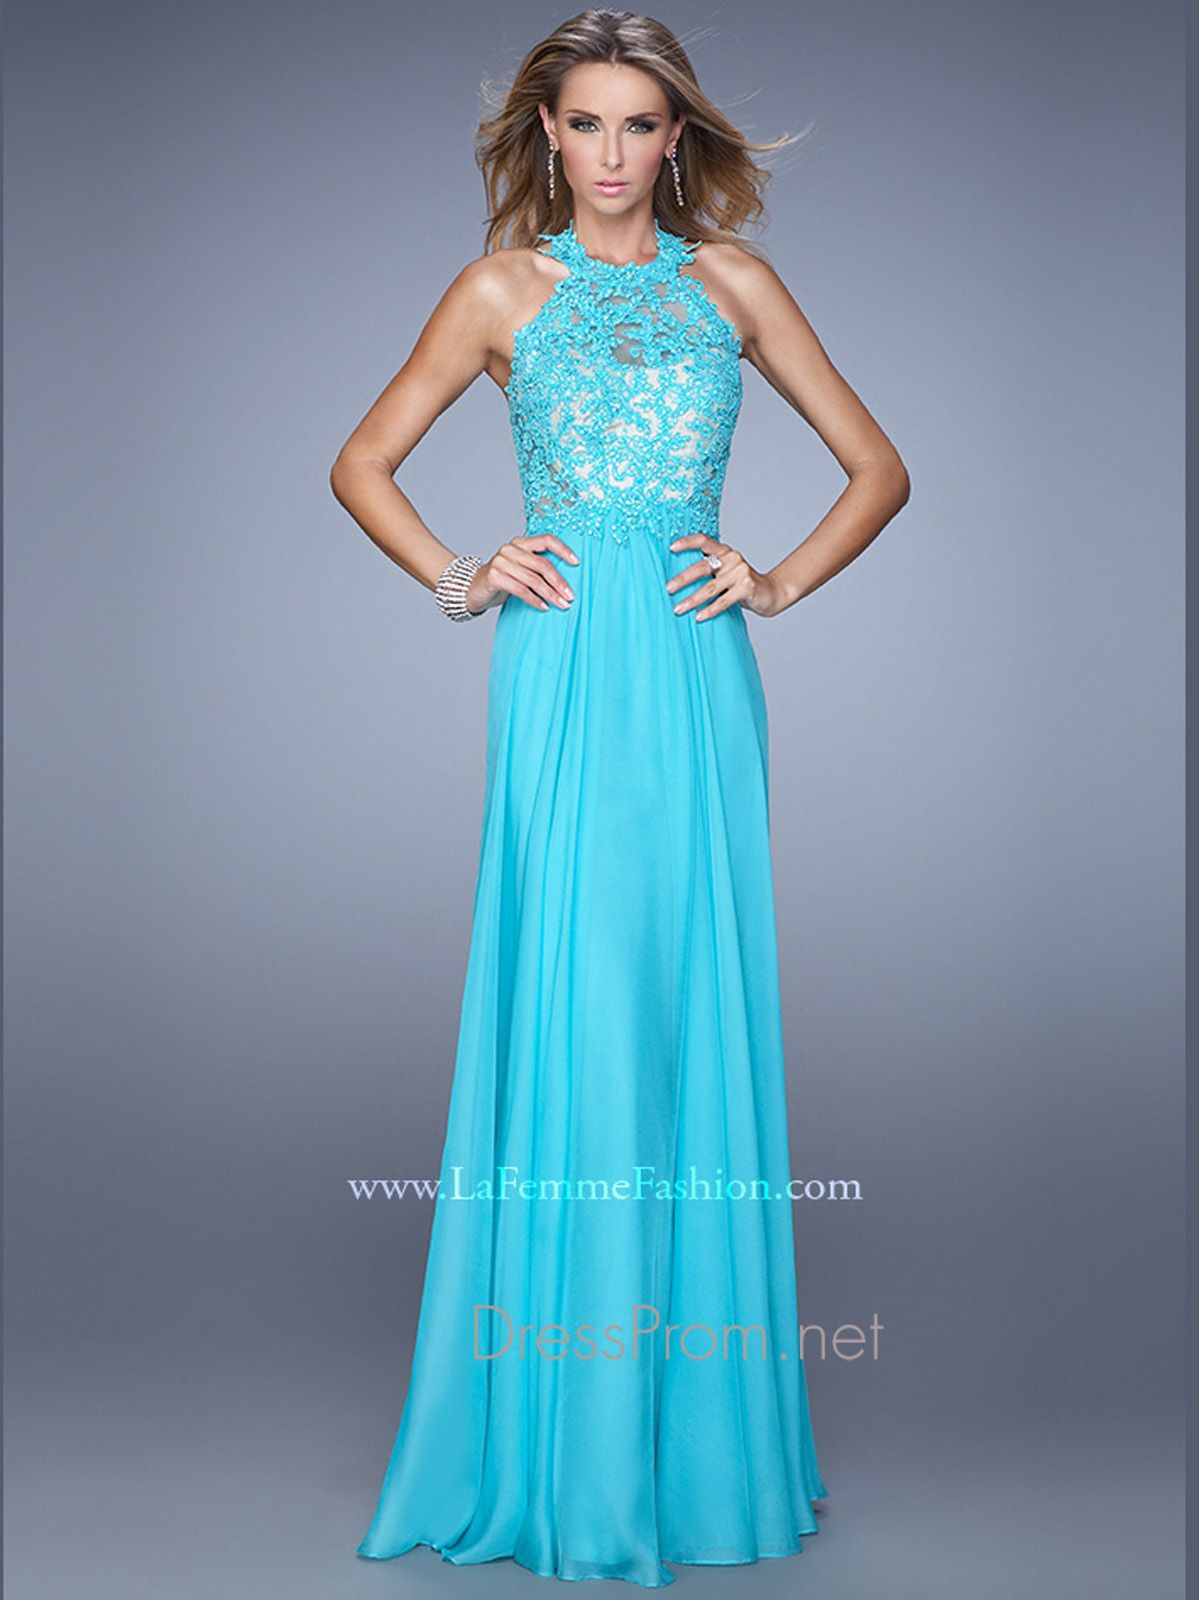 Steal the spotlight when donning this sophisticated prom design from